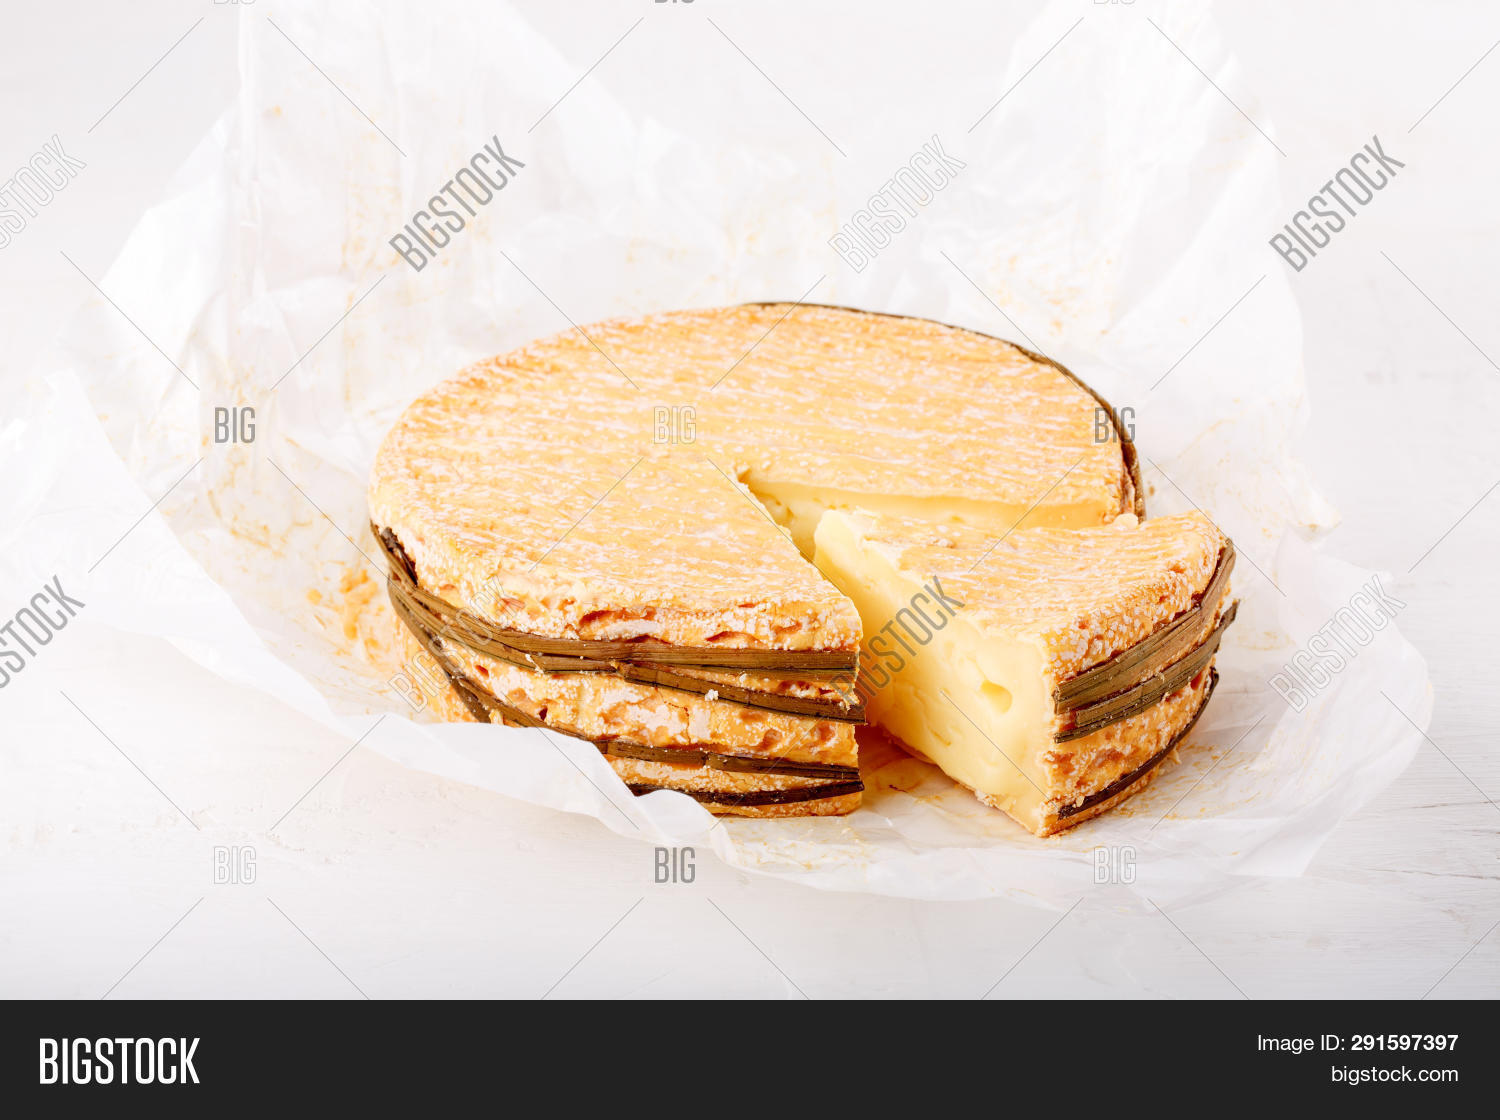 Livarote Cheese On Image Photo Free Trial Bigstock